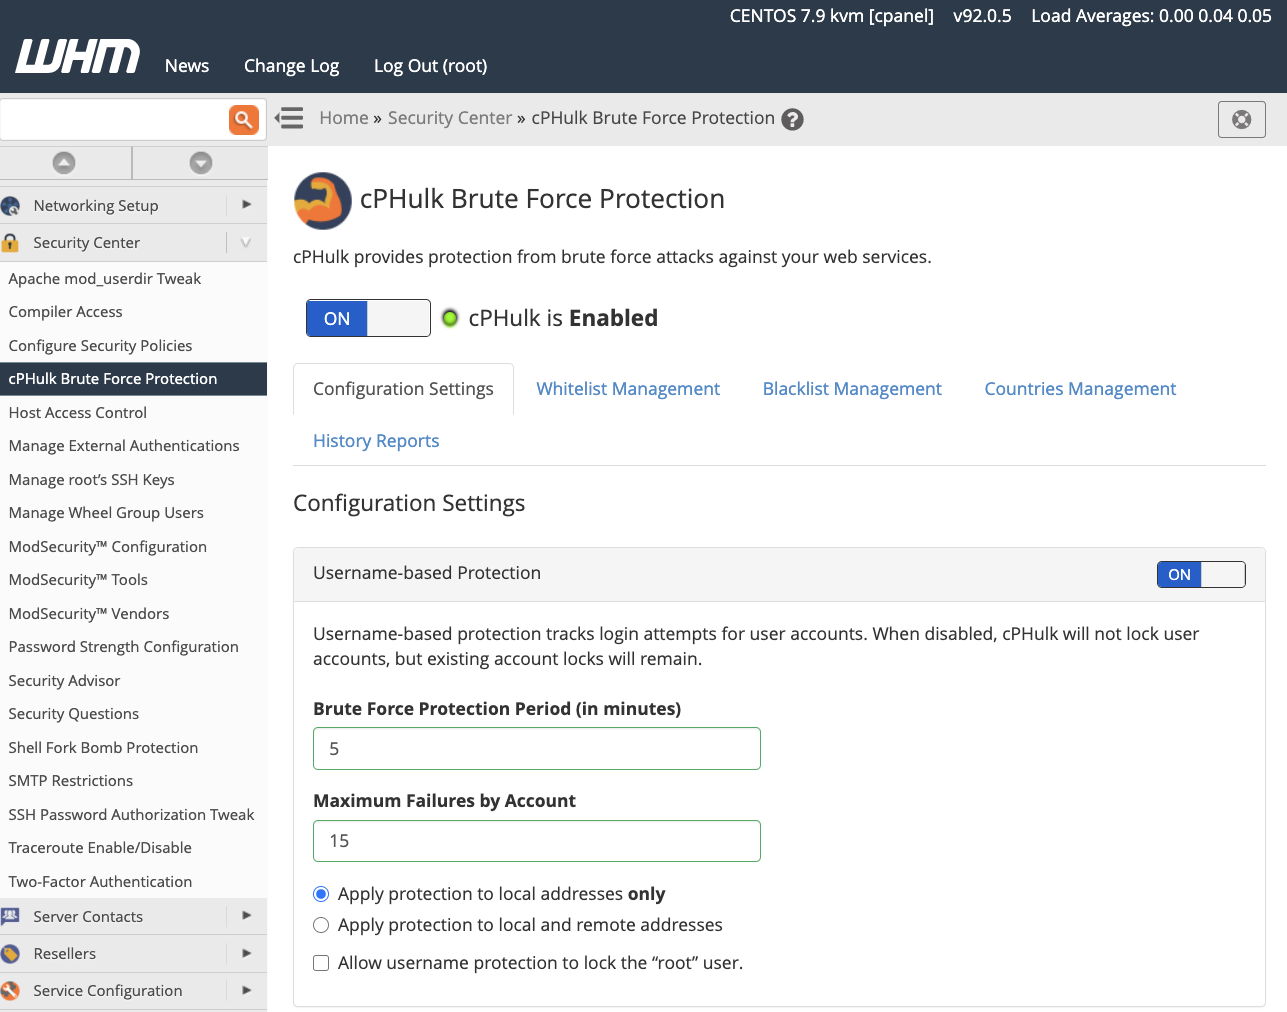 cPanel cPHulk Brute Force Protection